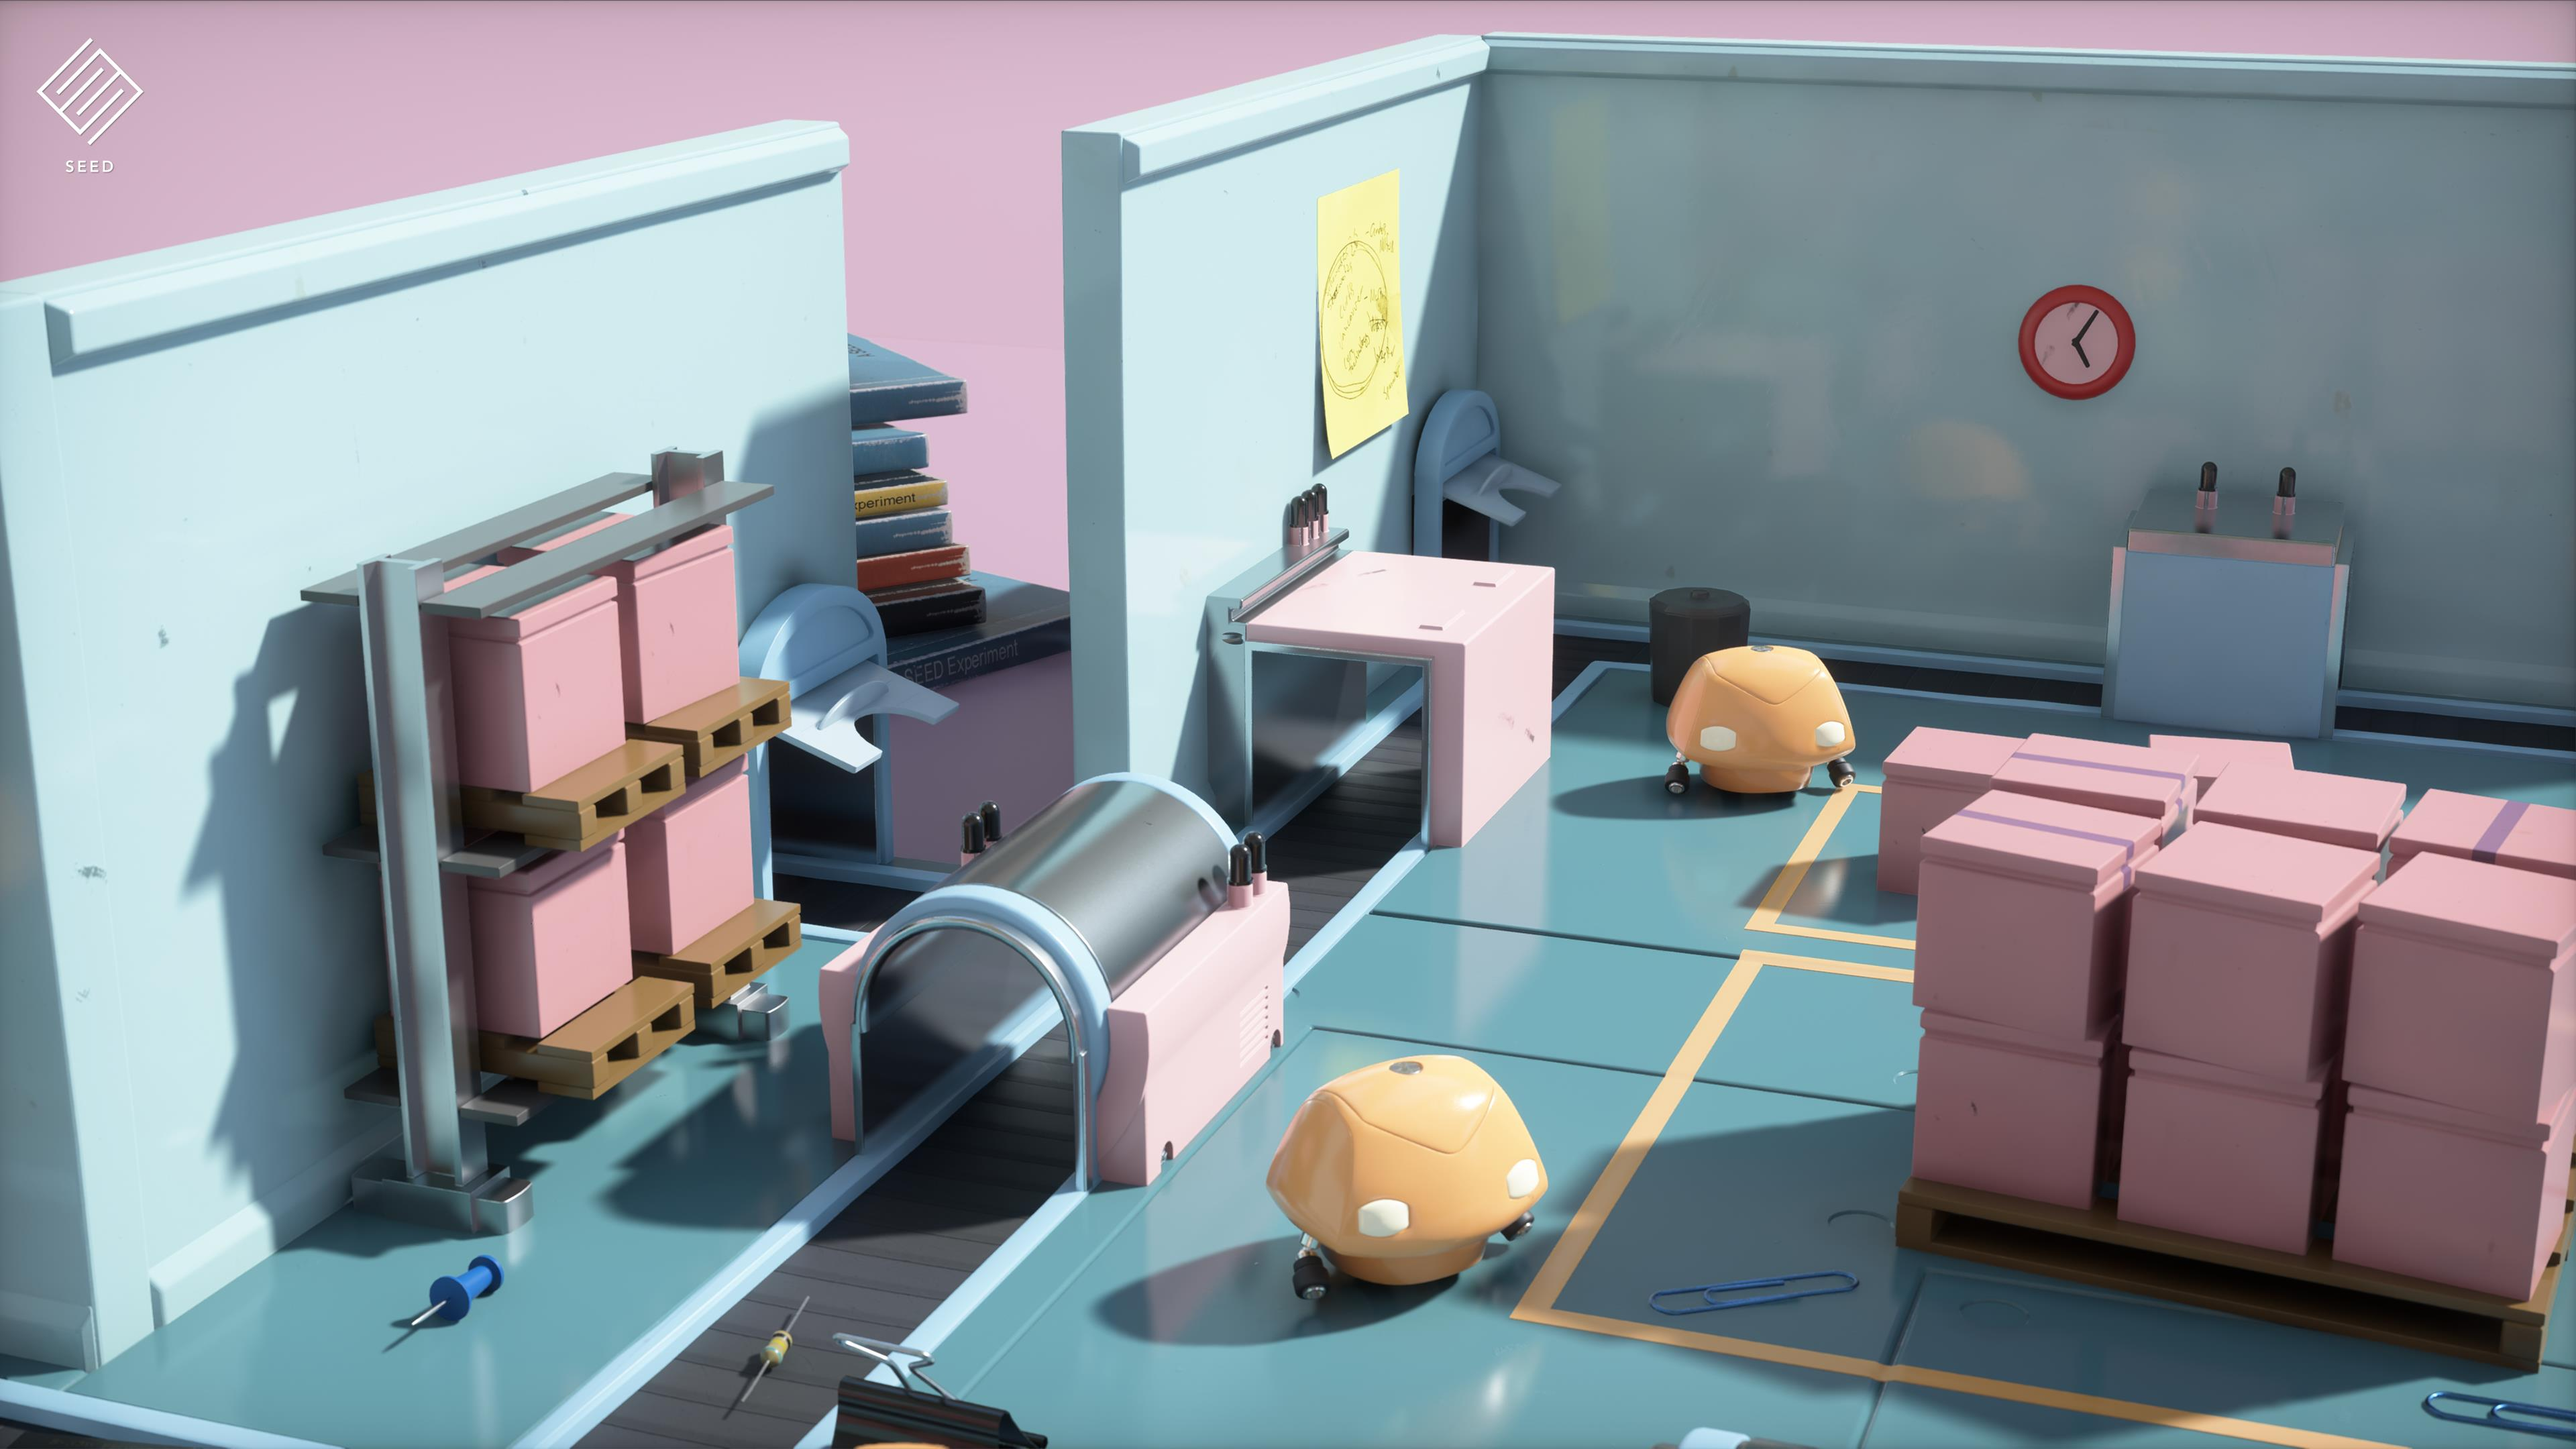 Raytracing explained: Nvidia, Microsoft lead the way in